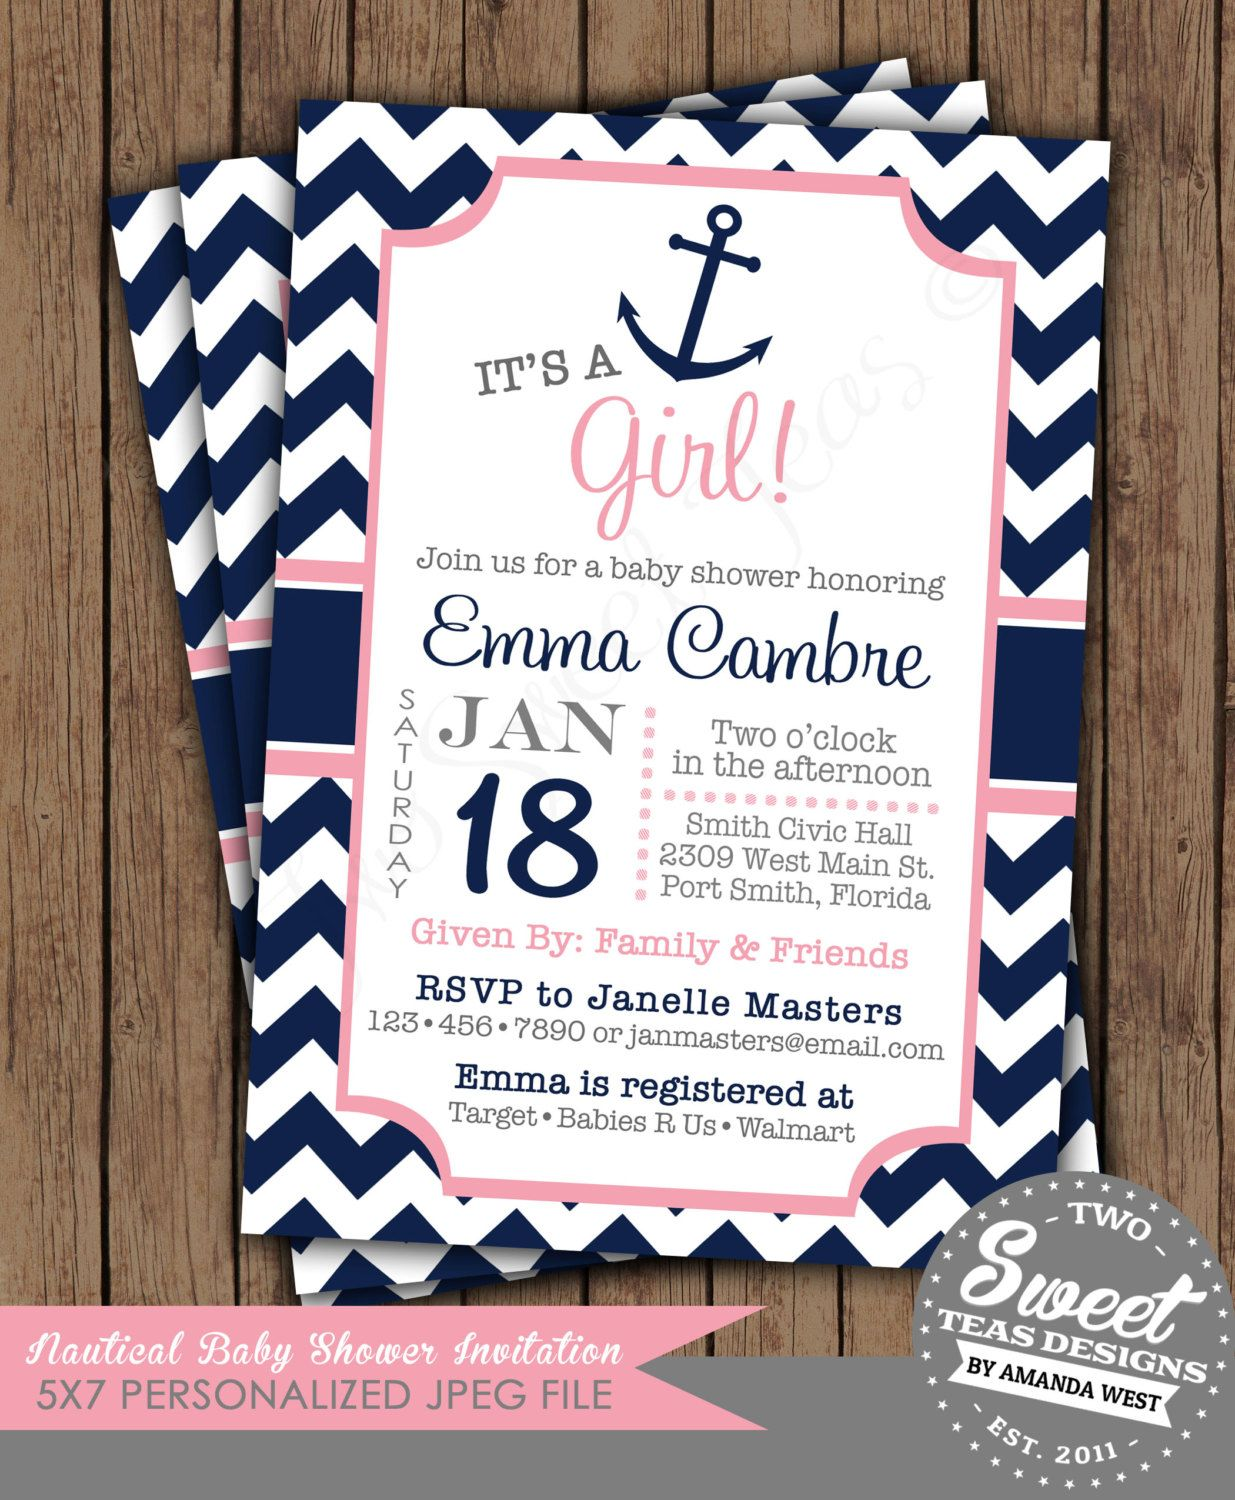 Nautical Girl Baby Shower Invitation Chevron by 2SweetTeas on Etsy ...